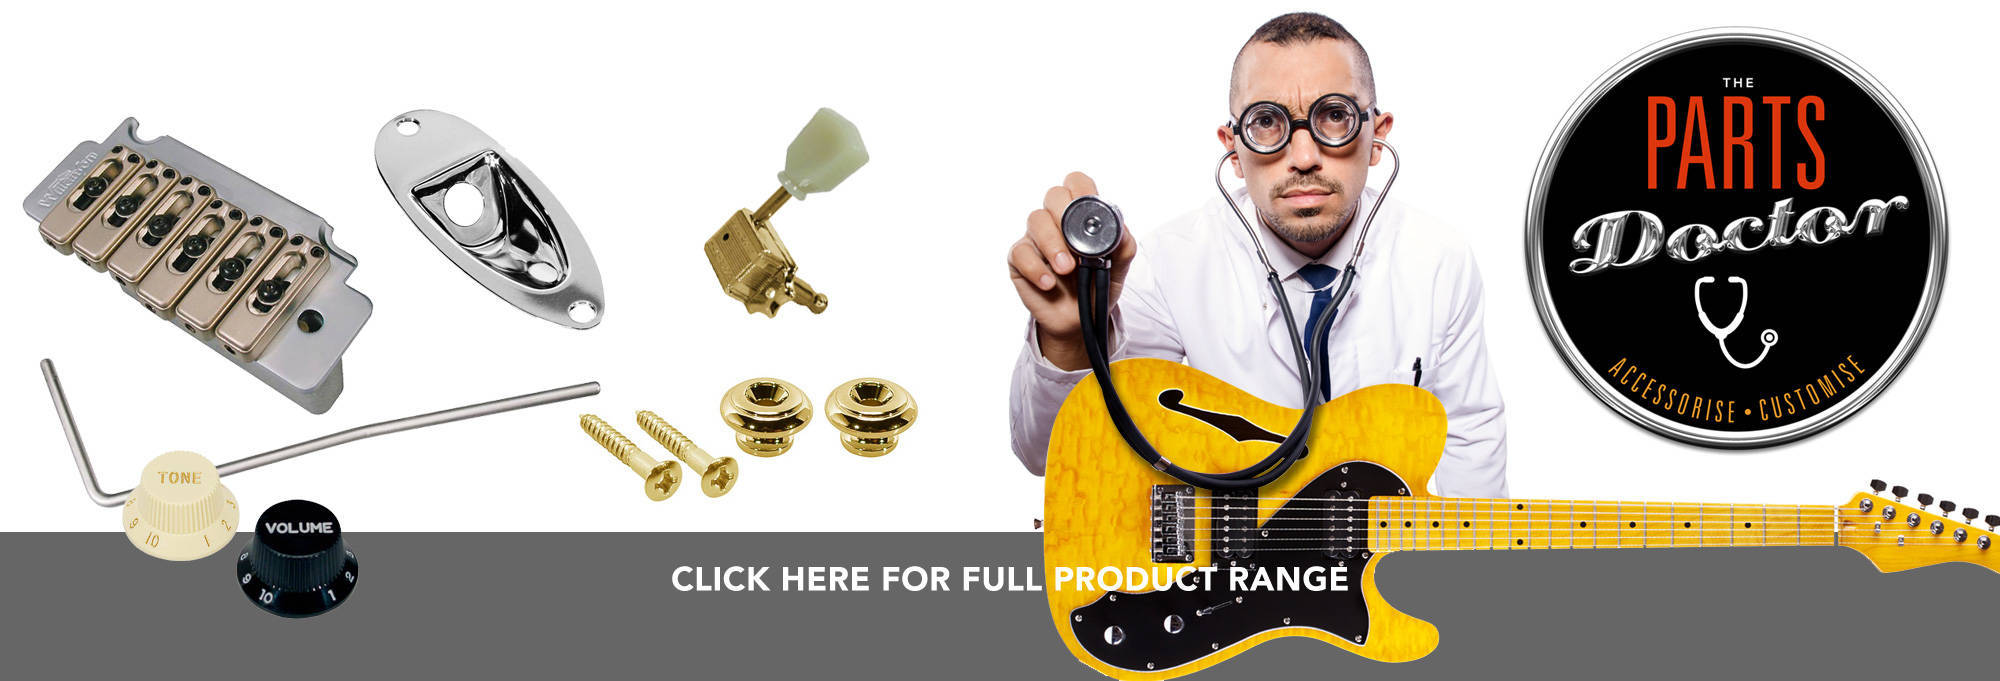 Parts Doctor